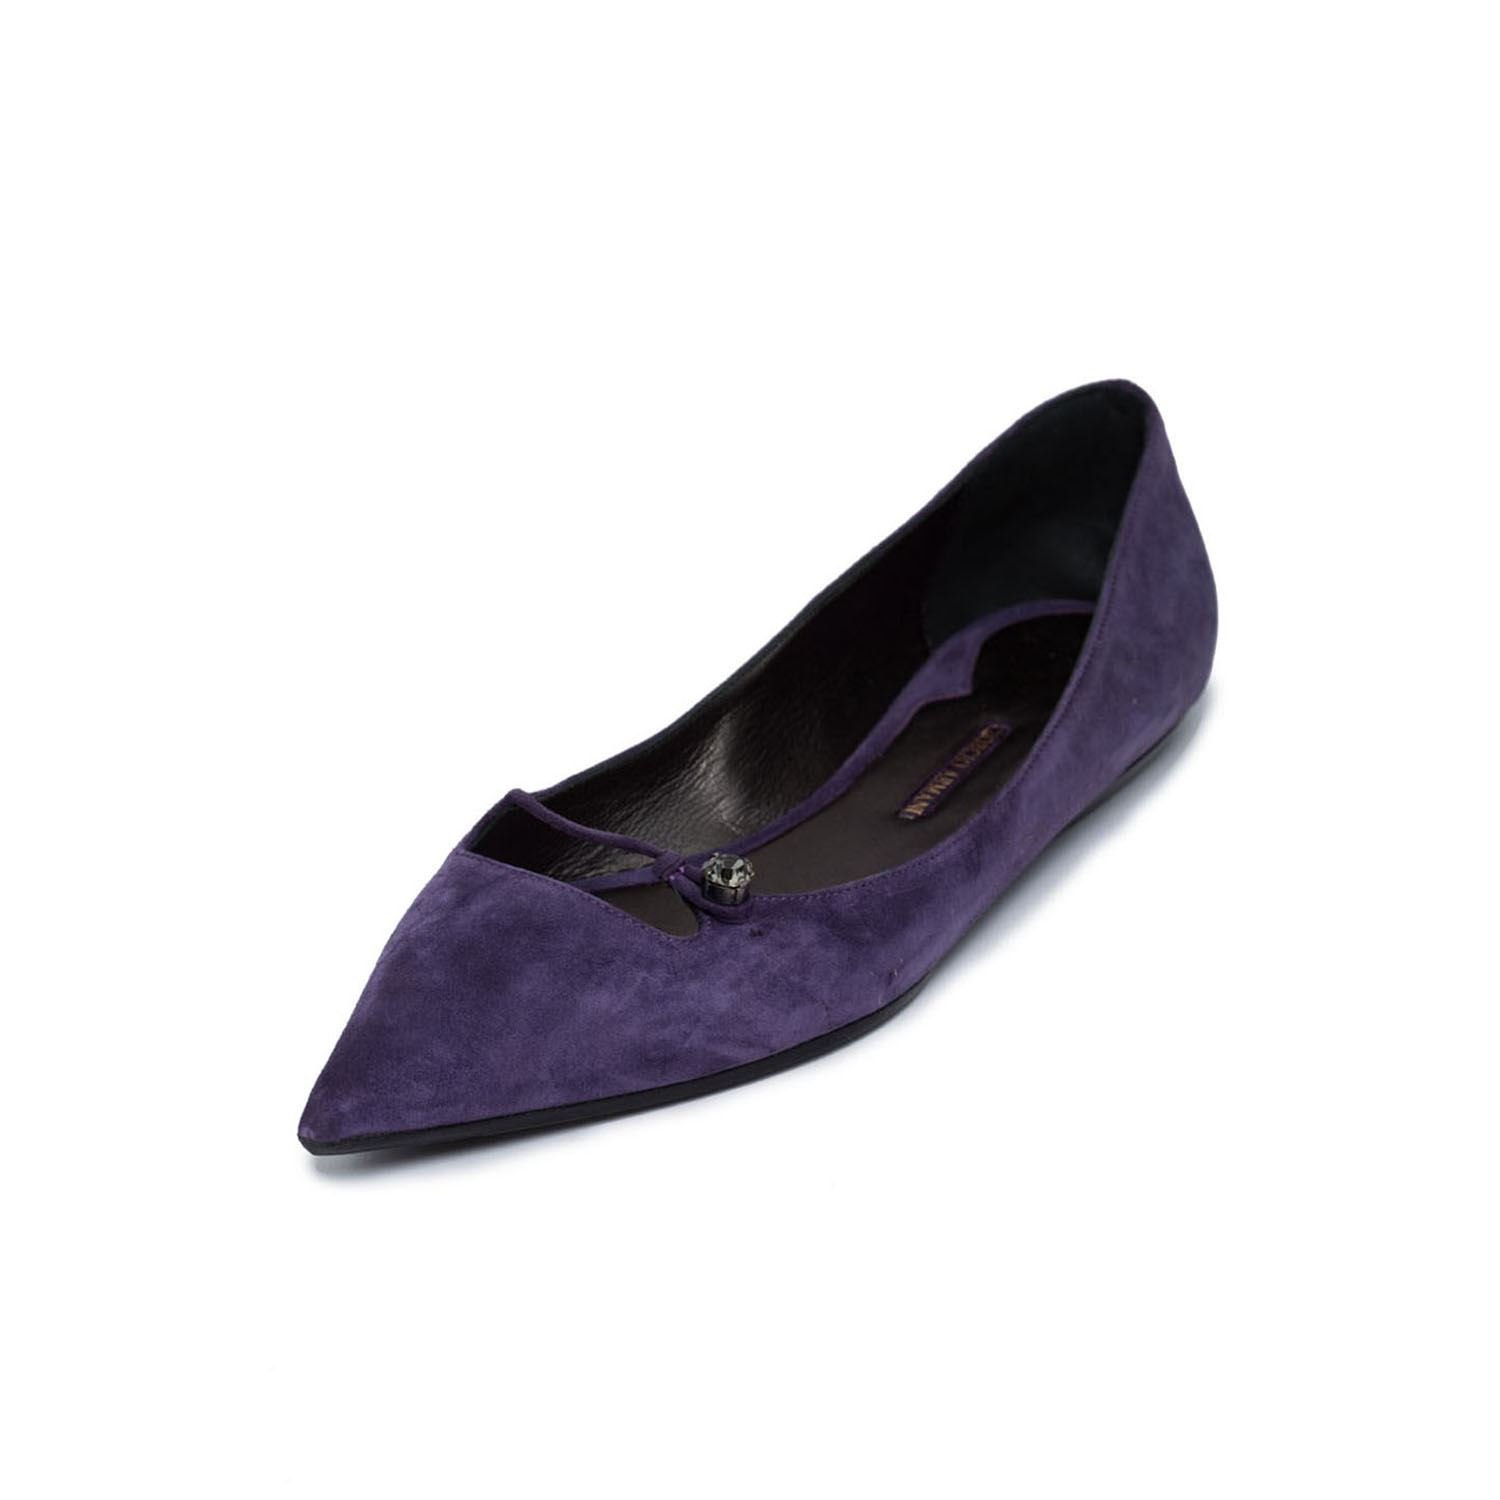 Giorgio Armani Women Purple Suede Leather Pointy Toe Ballet Flat Ballerina Shoes US 9.5 EU 39.5